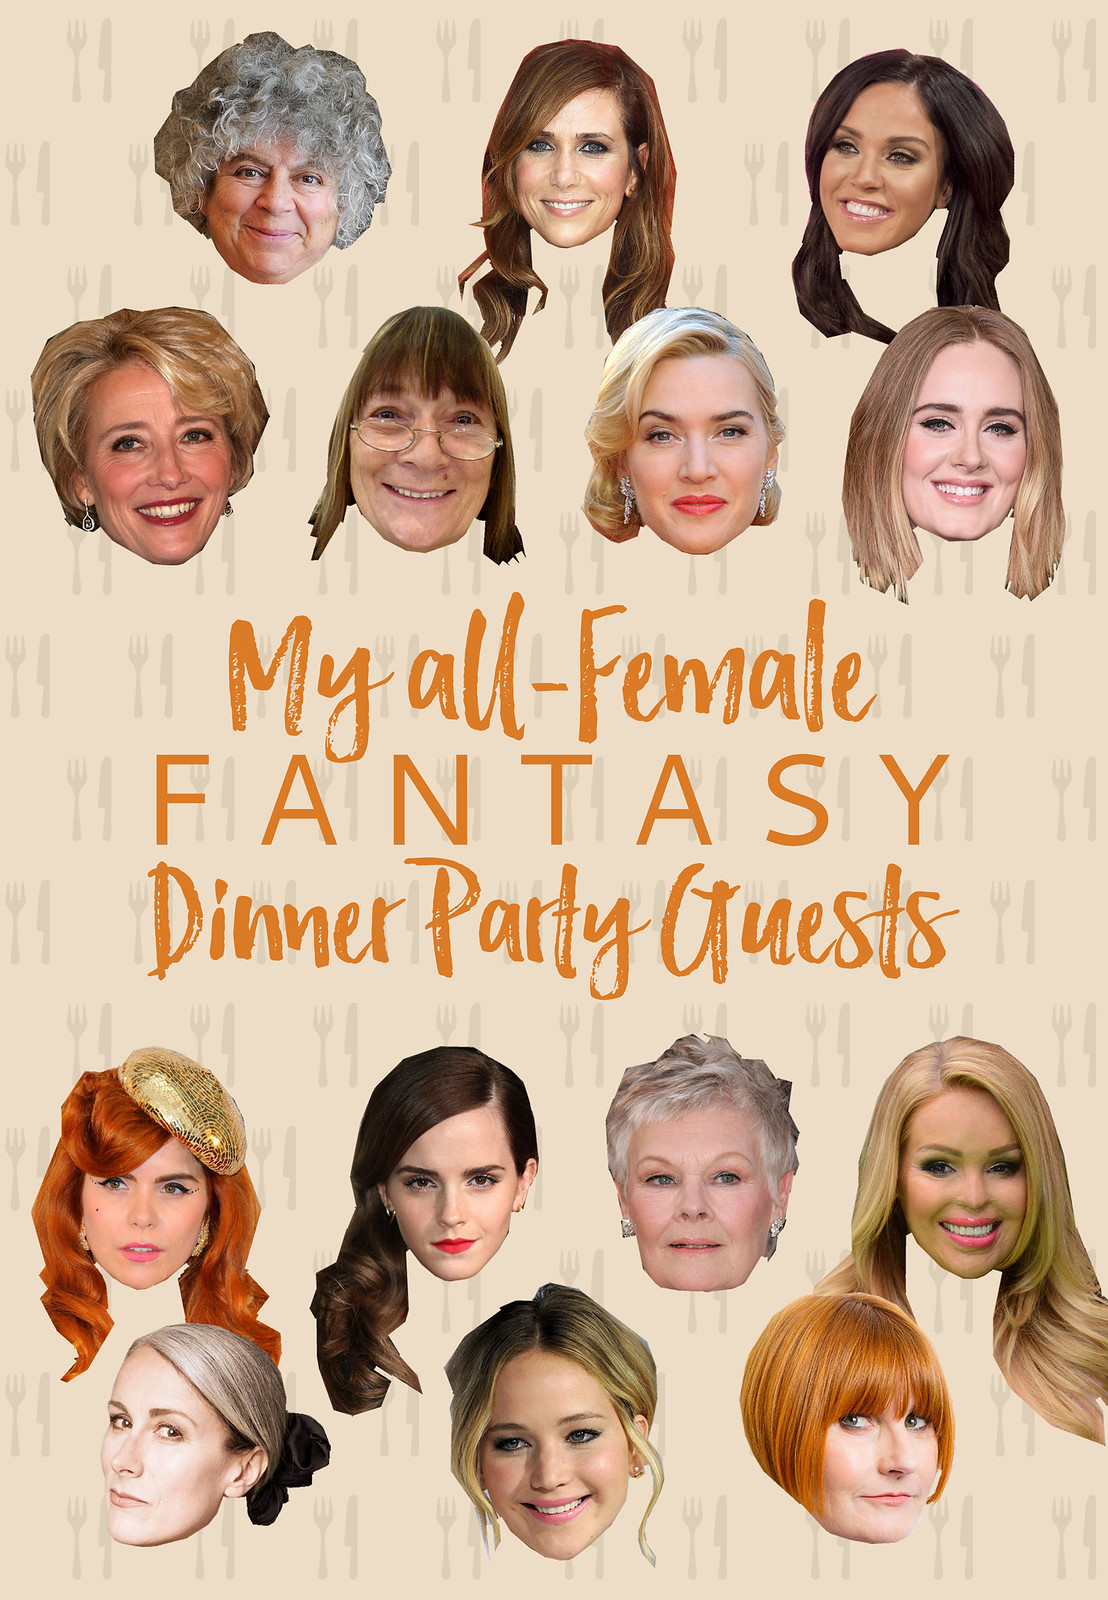 My All-Female Fantasy Dinner Party Guests | International Women's Day #IWD2016